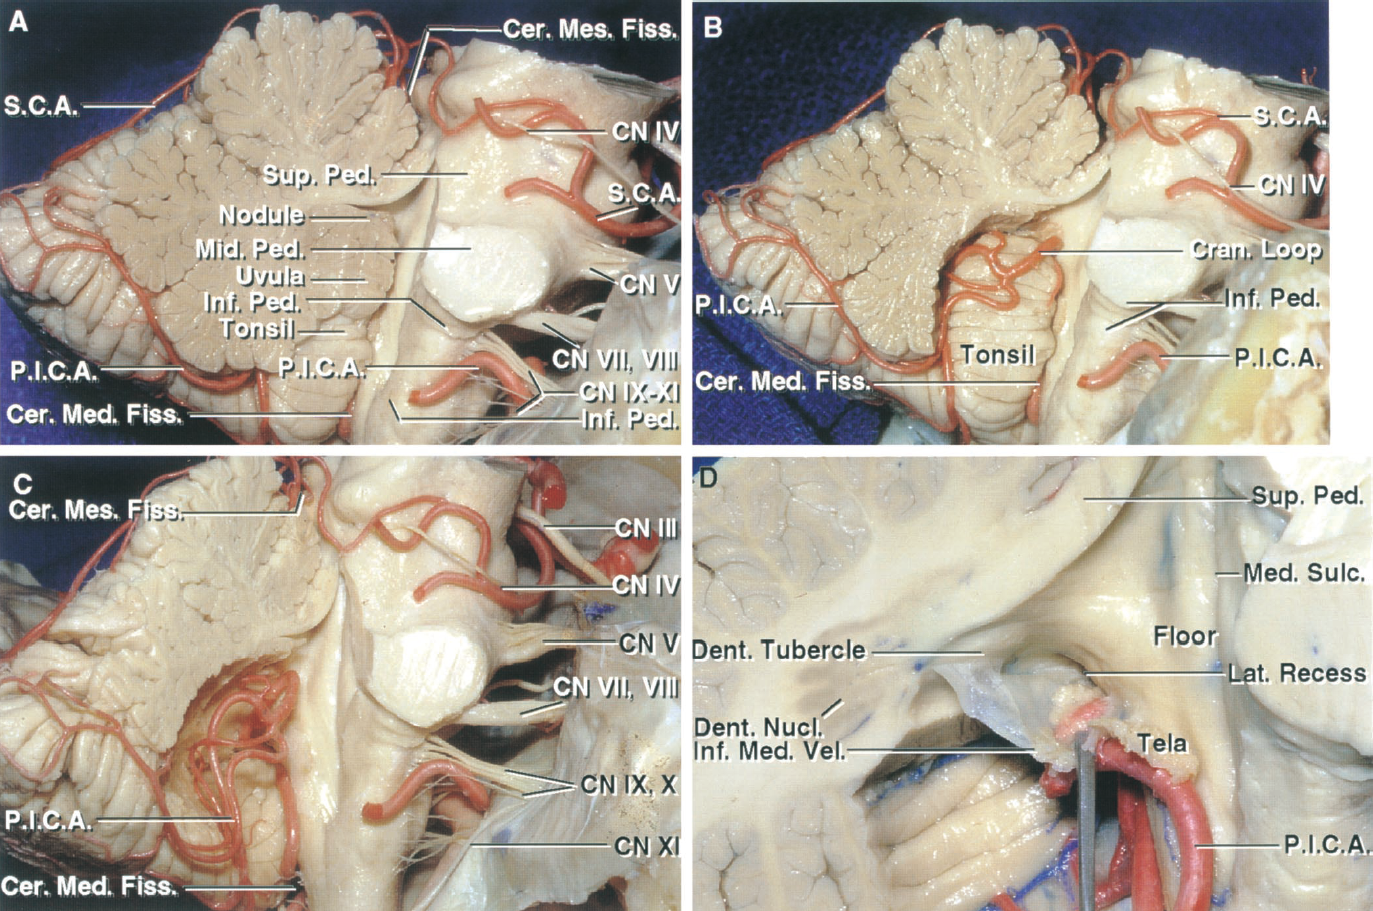 FIGURE 2.18. PICA relationships. A, the right half of the cerebellum has been removed. The right PICA passes between the rootlets of the vagus and accessory nerves to reach the surface of the inferior cerebellar peduncle. The left PICA, as it courses around the rostral pole of the tonsil, is hidden by the remaining left half of the uvula. The SCA passes around the brainstem below the oculomotor nerve and above the trigeminal nerve. B, the part of the uvula and nodule medial to the tonsil has been removed to expose the PICAs passage through the cerebellomedullary fissure and around the tonsil. The artery frequently forms a caudal loop at the lower margin of the tonsil and a cranial or supratonsillar loop that wraps around the rostral pole of the tonsil. C, the tonsil has been removed to expose the PICA's looping course through the cerebellomedullary fissure. D, the inferior medullary velum, which stretches across the rostral pole of the tonsil, has been folded downward to expose the dentate tubercle, a prominence near the fastigium that underlies the dentate nucleus. The lateral recess is also exposed. The telovelotonsillar segment of the PICA courses in the cerebellomedullary fissure between the tela and velum on one side and the tonsil on the other side. Cer. Med., cerebellomedullary; Cer. Mes., cerebellomesencephalic; CN, cranial nerve; Cran., cranial; Dent., dentate; Fiss., fissure; Inf., inferior; Lat., lateral; Med., median, medullary; Mid., middle; Nucl., nucleus; Ped., peduncle; P.I.C.A., posteroinferior cerebellar artery; S.C.A., superior cerebellar artery; Sulc., sulcus; Sup., superior; Vel., velum.